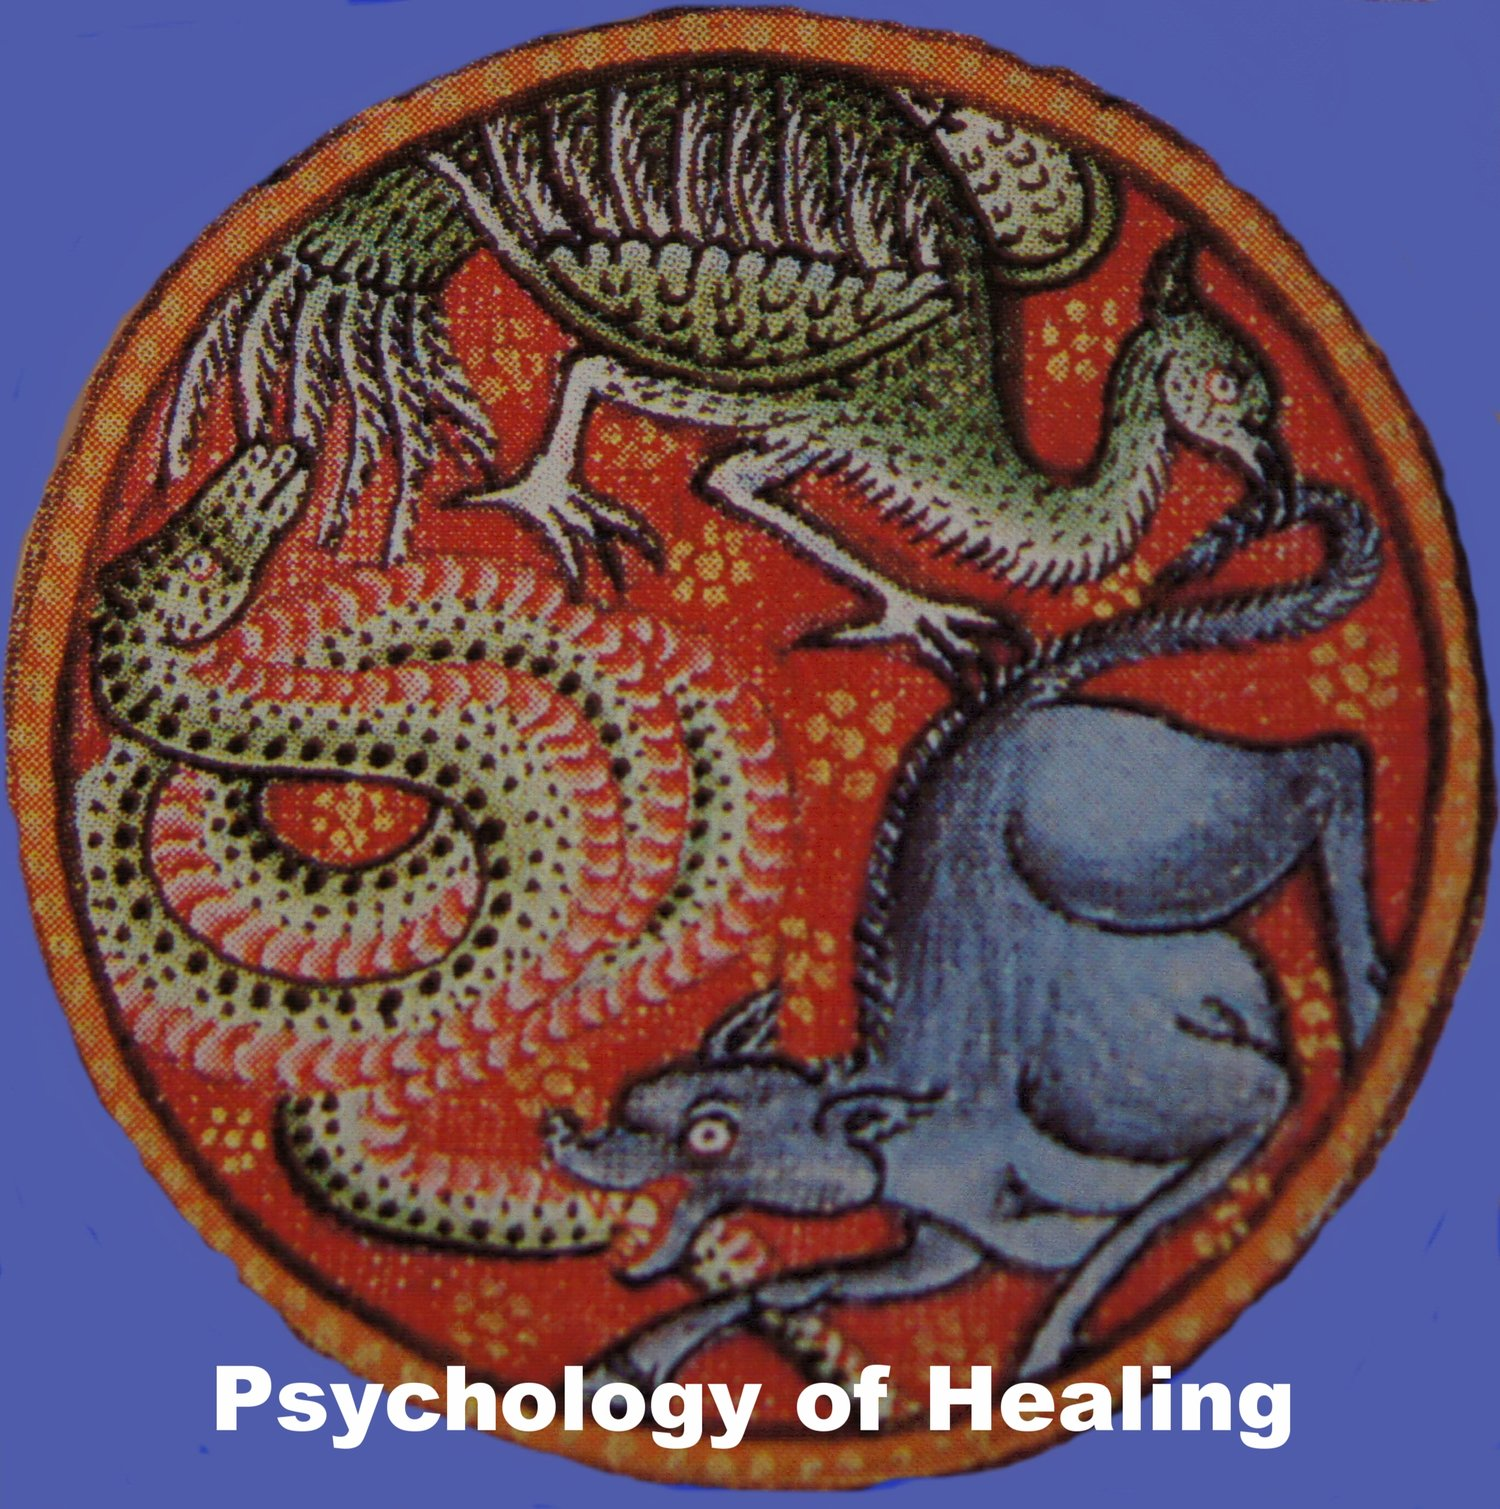 Psychology of Healing